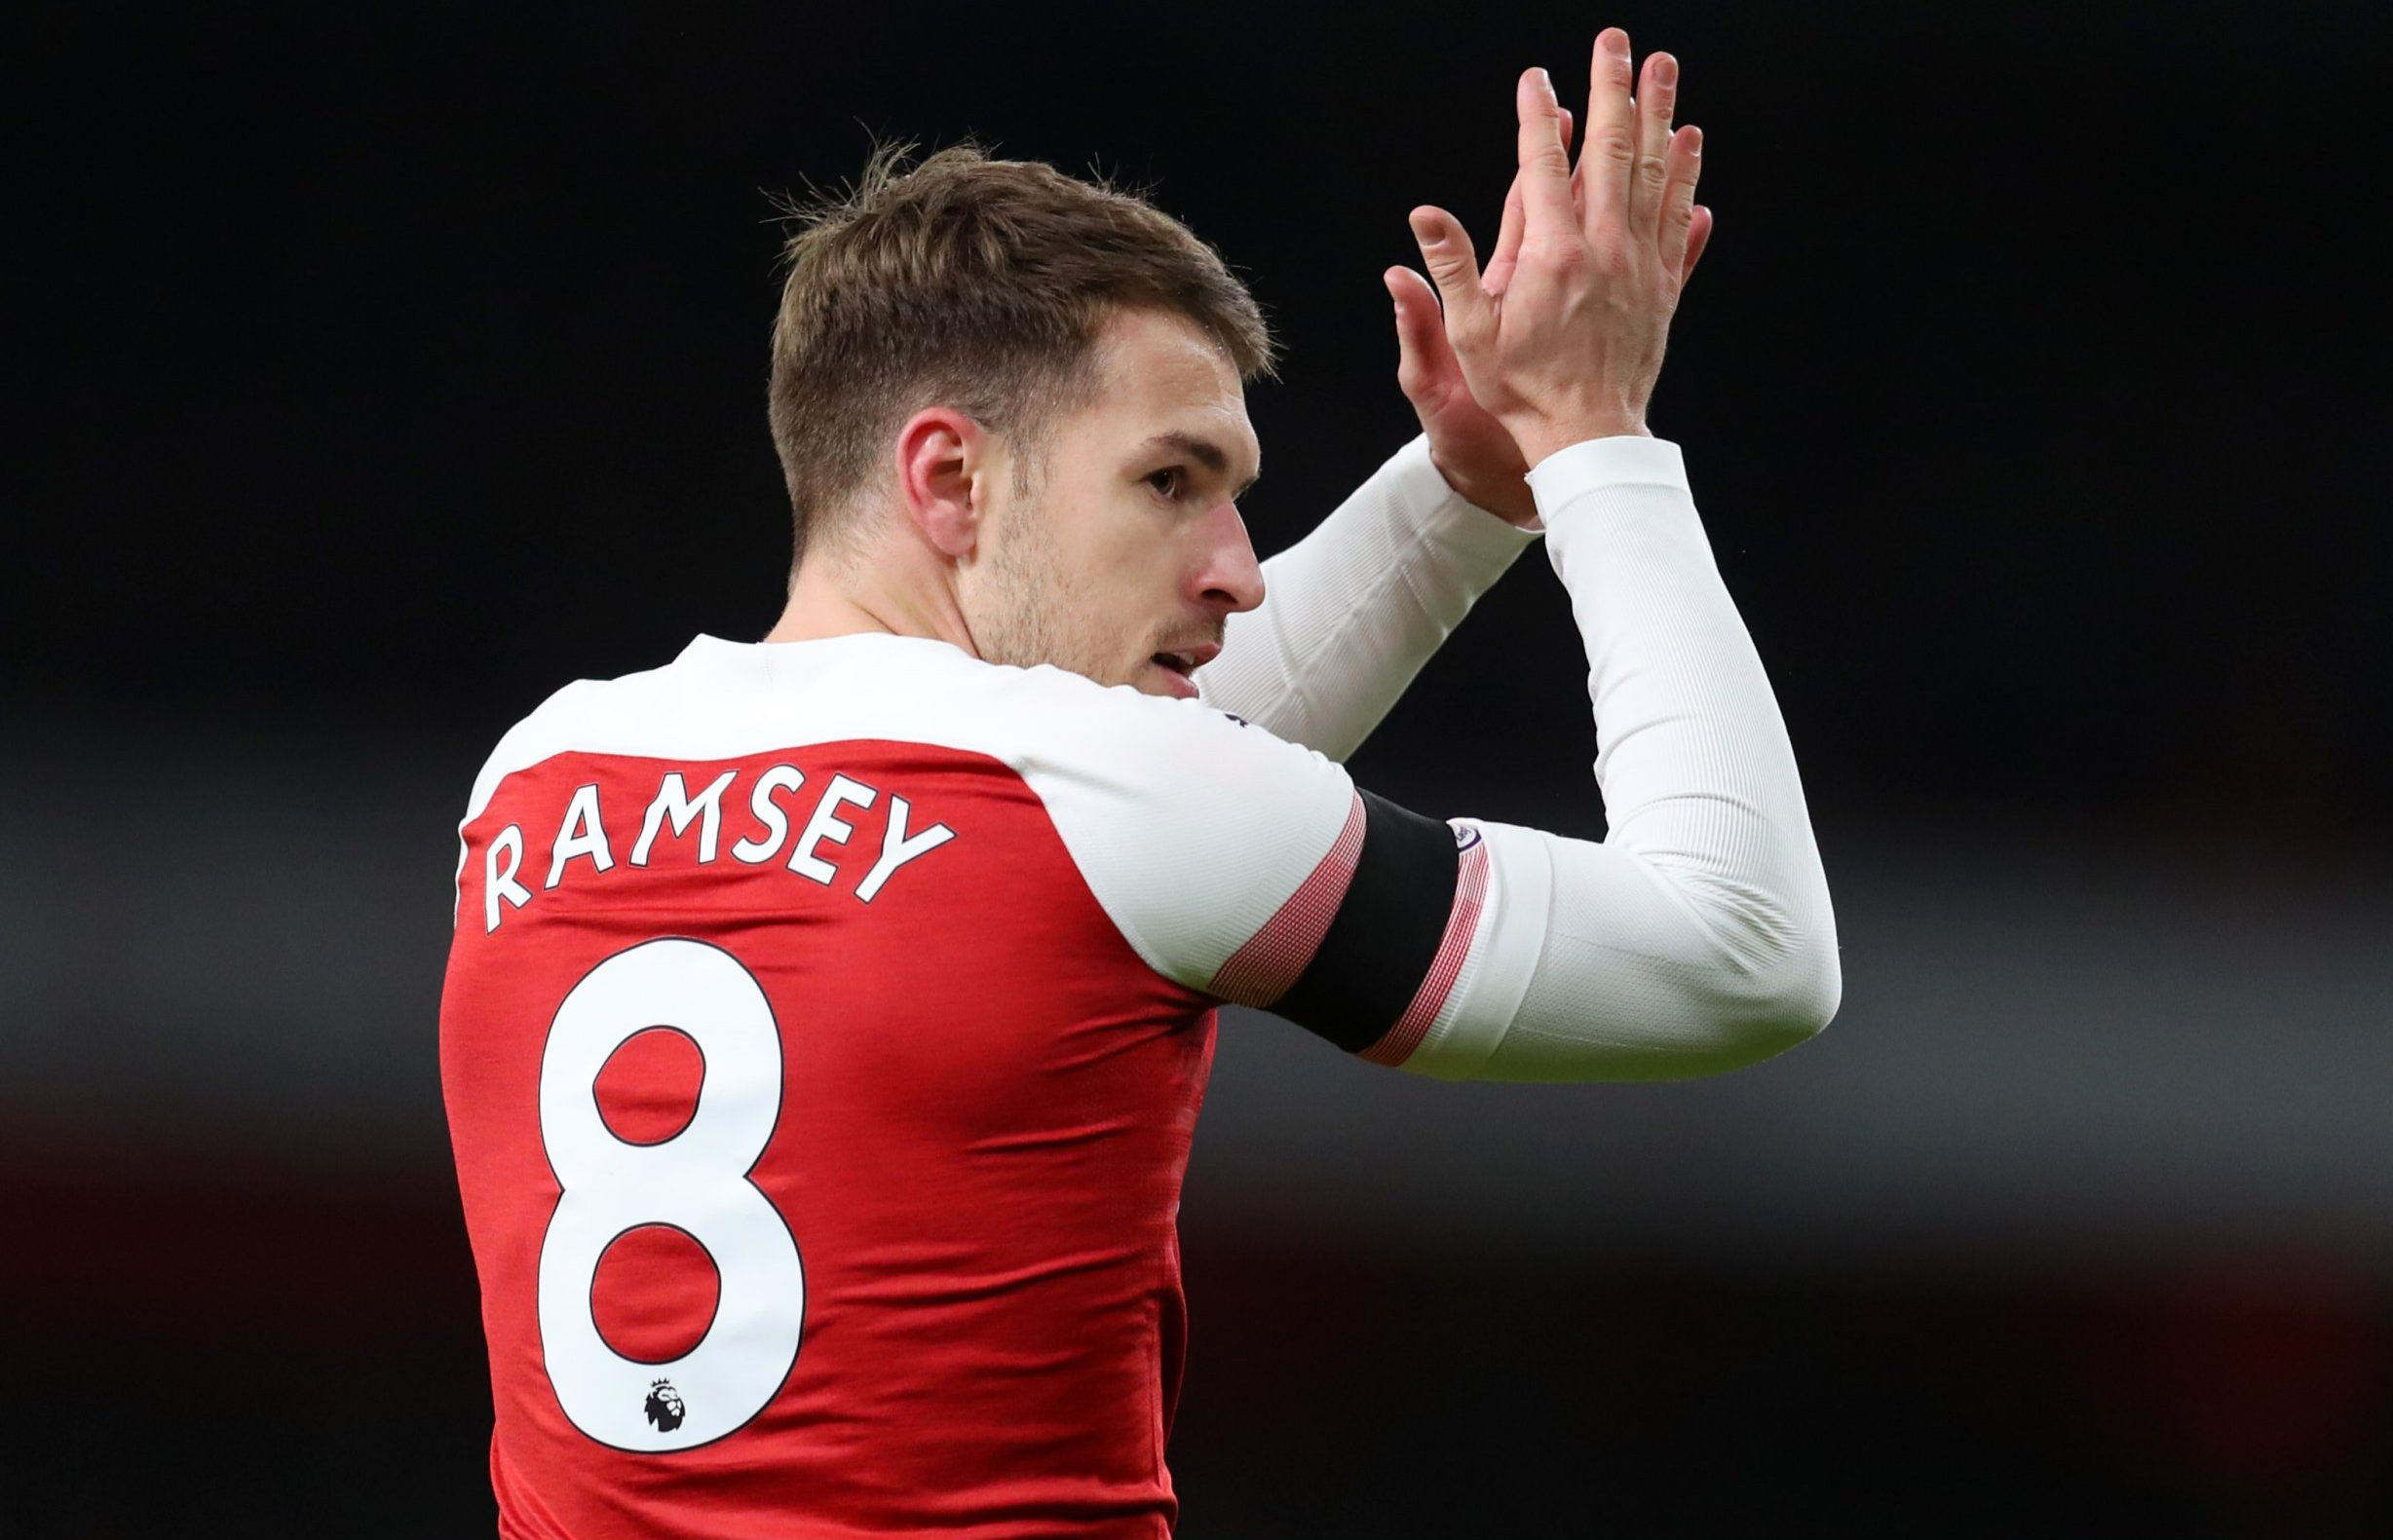 Aaron Ramsey wearing Arsenal home kit with number 8 on his shirt celebrates after scoring a goal against Fulham